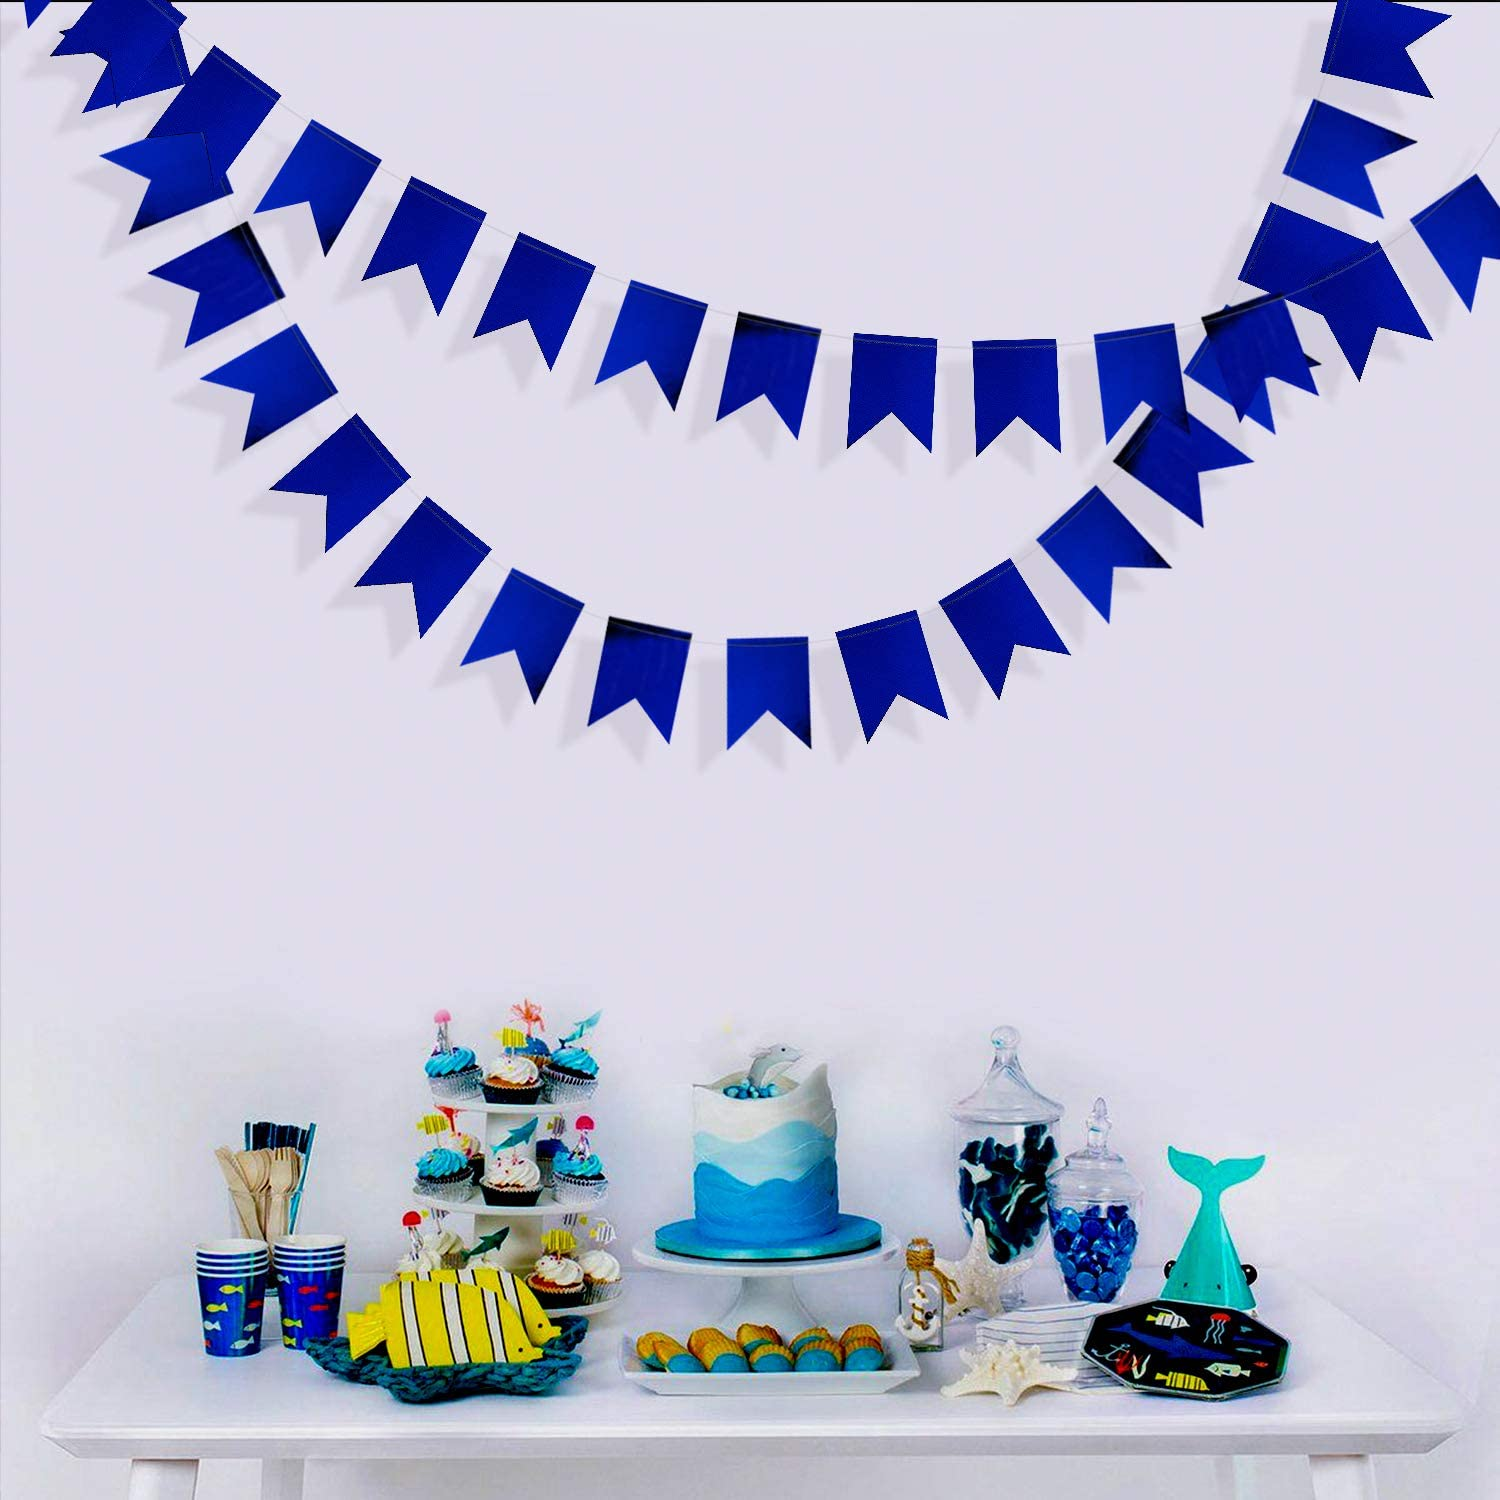 40 Ft Blue Christmas Navy Swallowtail Flags Banner Double Sided Metallic Paper Bunting Garland for Wedding Bridal Shower Birthday Bachelorette Engagement Anniversary Hen Party Decoration Supplies